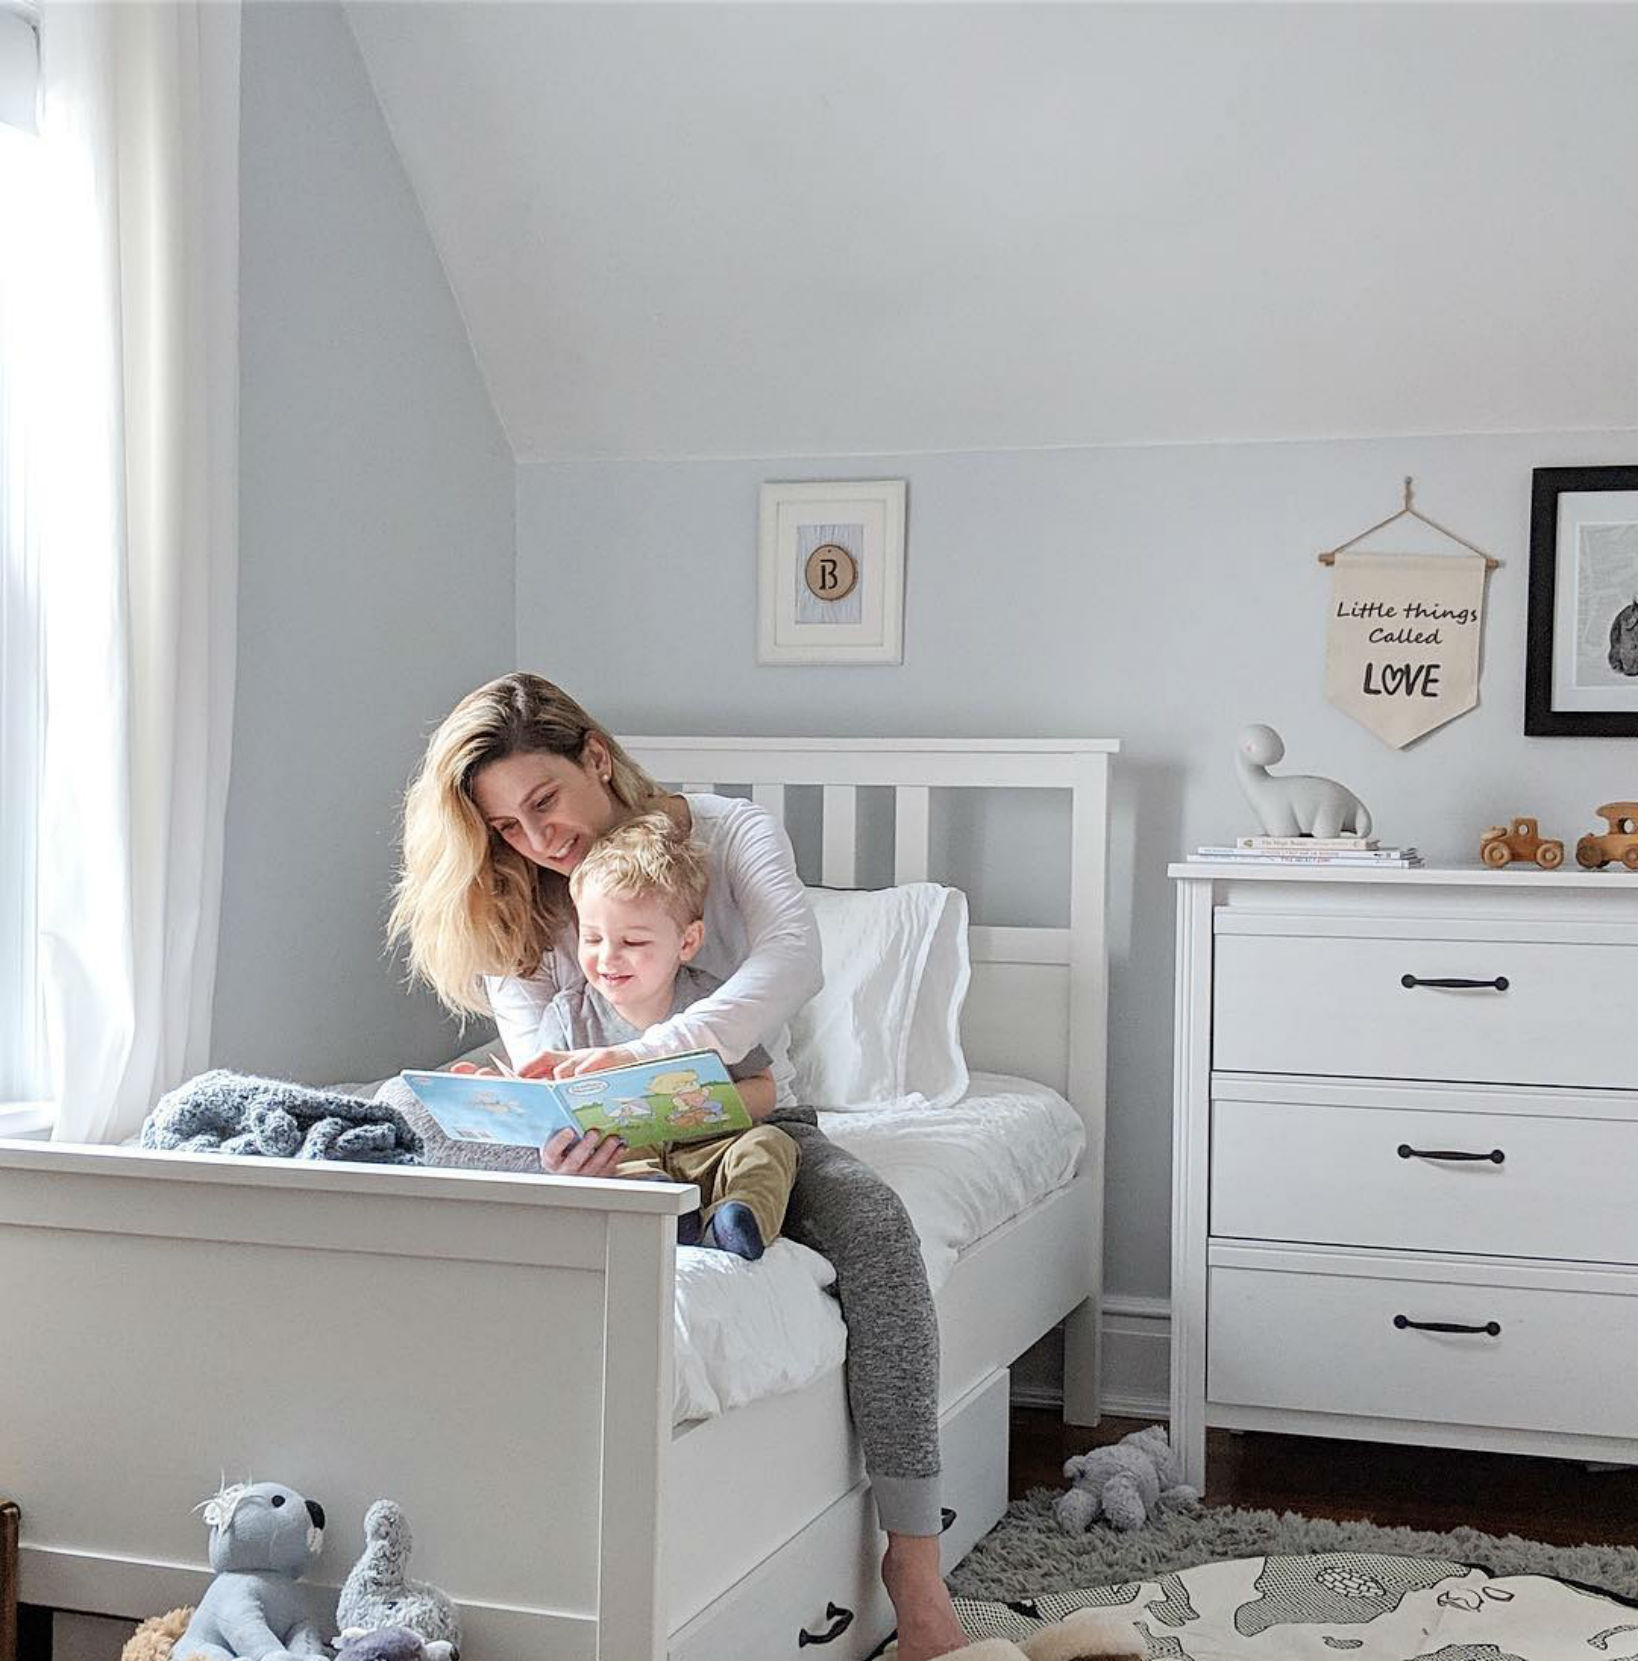 """Vanessa Falsetti - Instagram: @josephineacreativelifeVanessa is a Toronto lifestyle blogger, freelance writer, teacher, and a mother of three. Her blog centres on celebrating simple and creative living, plus creating a space where amazing stories can be shared.""""I also am so happy that the boys are getting a great nights sleep in their new big boy beds with mattress from @endy. After we tried an @endymattress , we really wanted the boys to enjoy a set as well. Let's just say that when they want us to sleep with them if they've had a nightmare it's a whole lot more comfortable now!"""""""